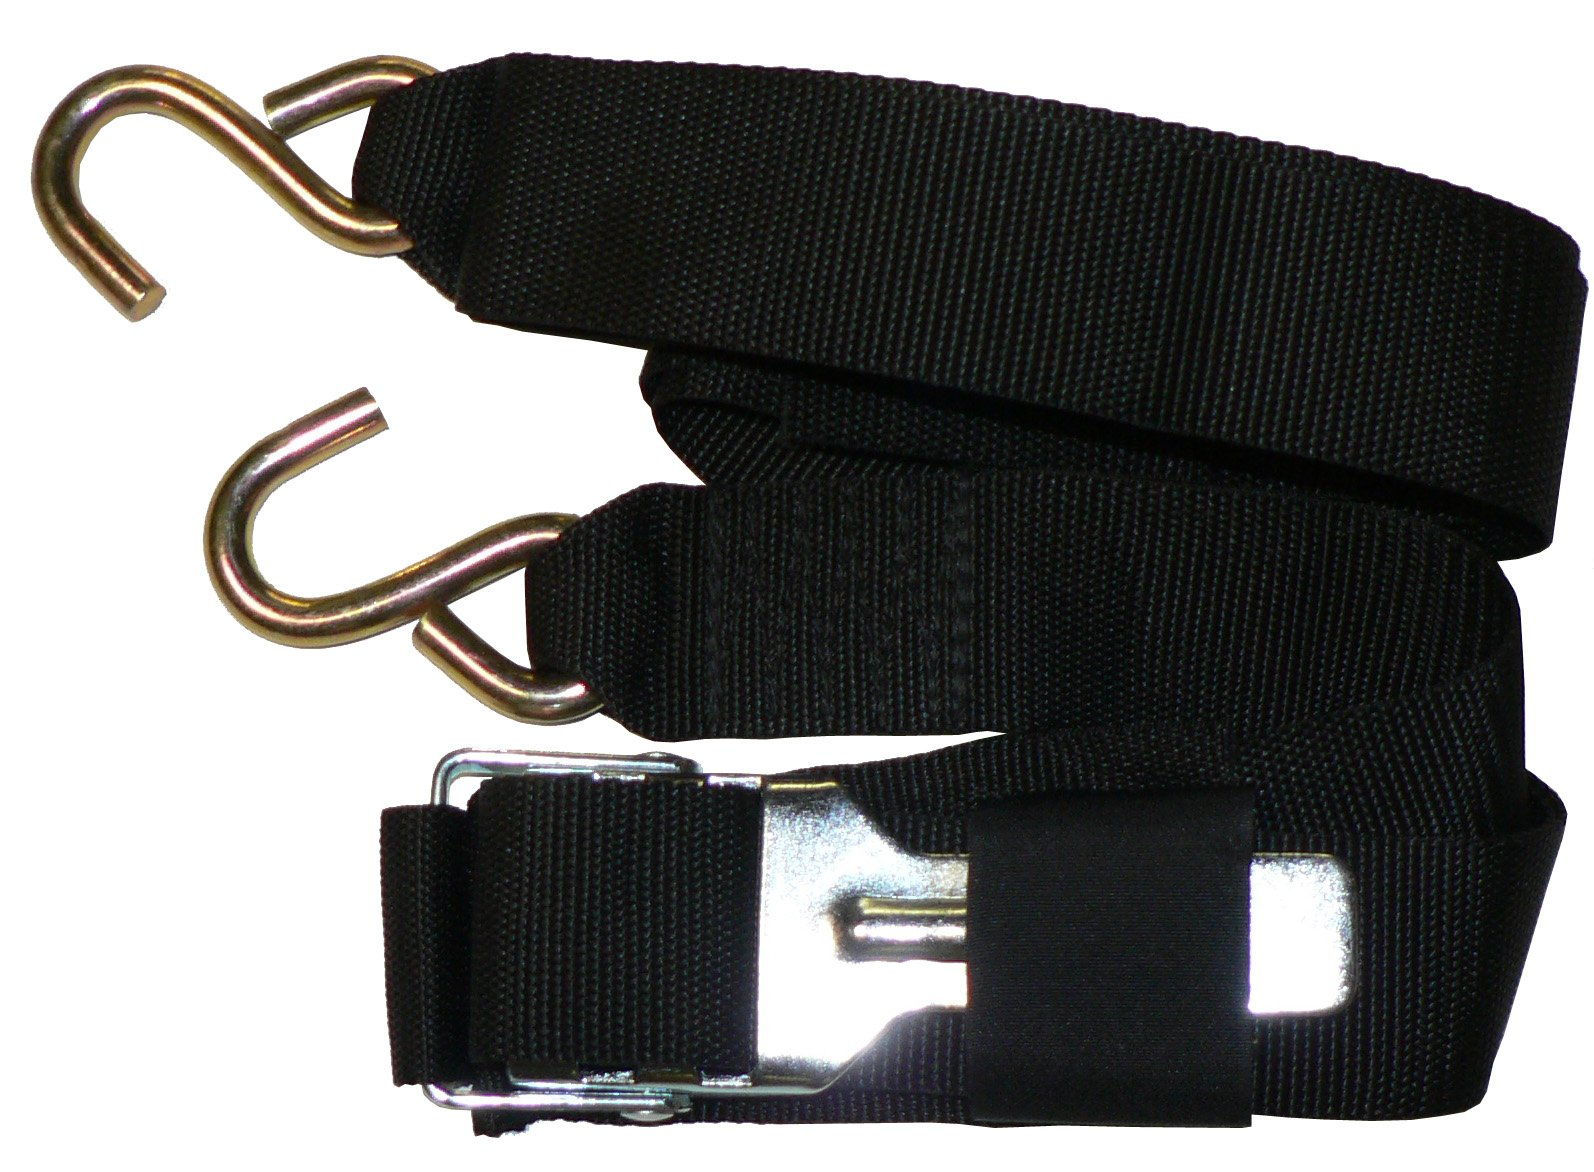 Rod Saver Paddle Buckle Gunwale 2 inch Tie-Down (16 Feet) by Rod Saver Marine Accessories